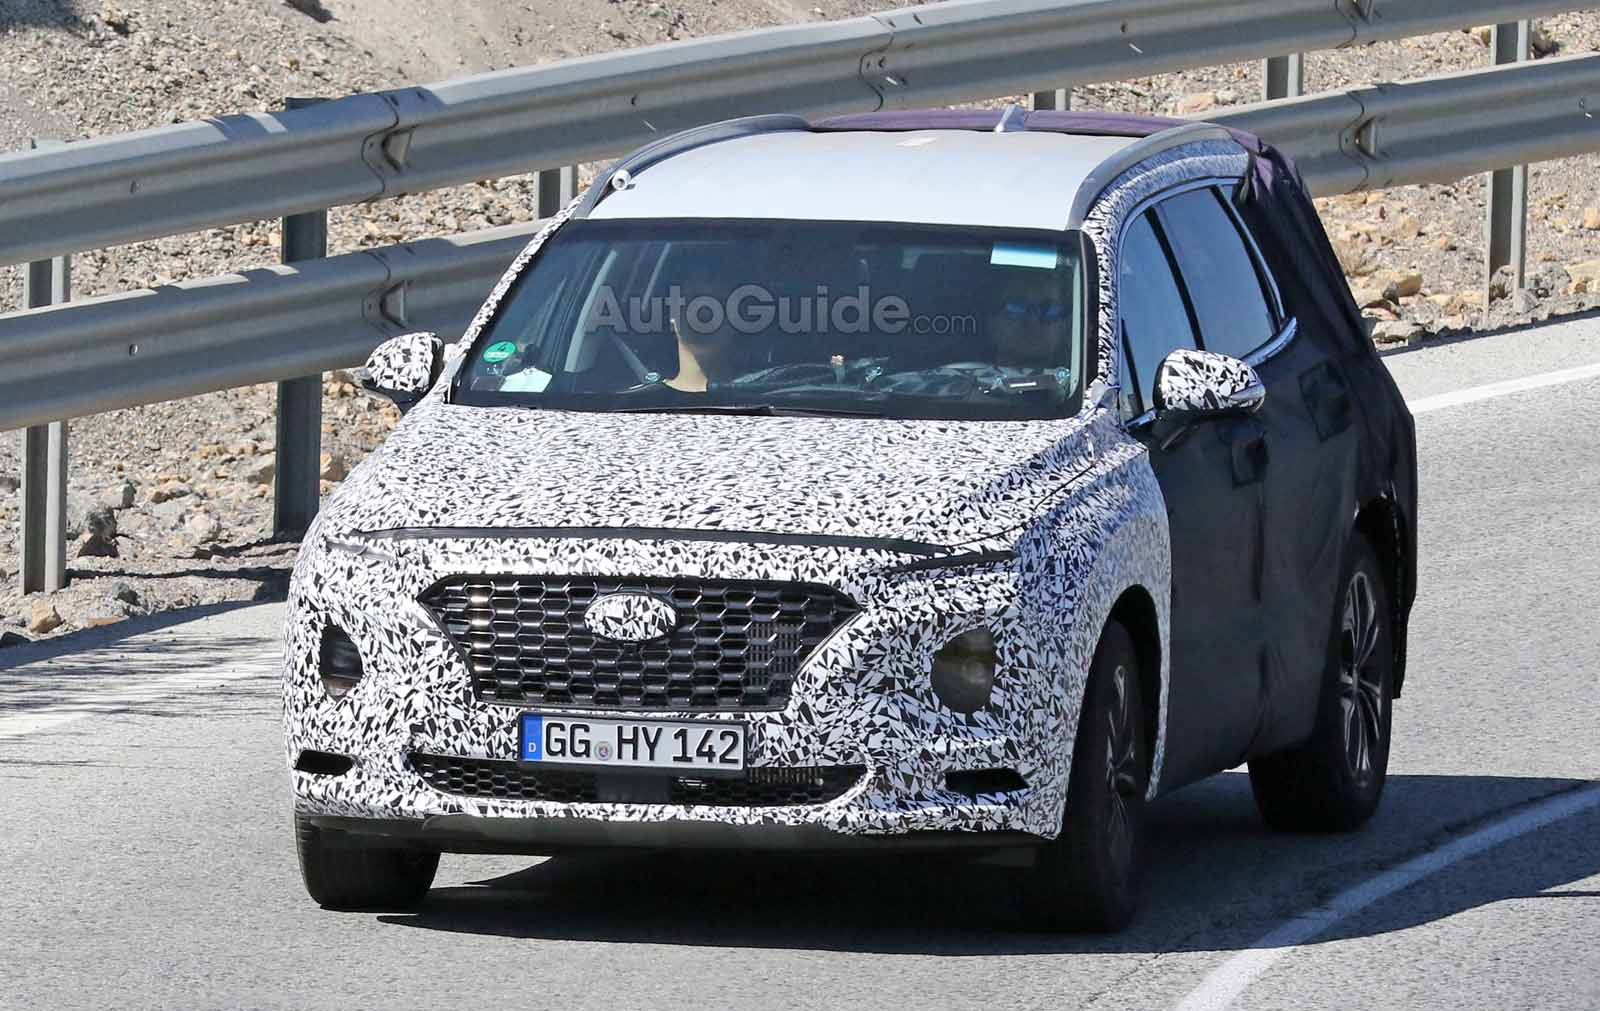 2019 Hyundai Santa Fe New Spy Shots And Redesign News >> New Hyundai Santa Fe Ditches Some Camo In Latest Spy Shots